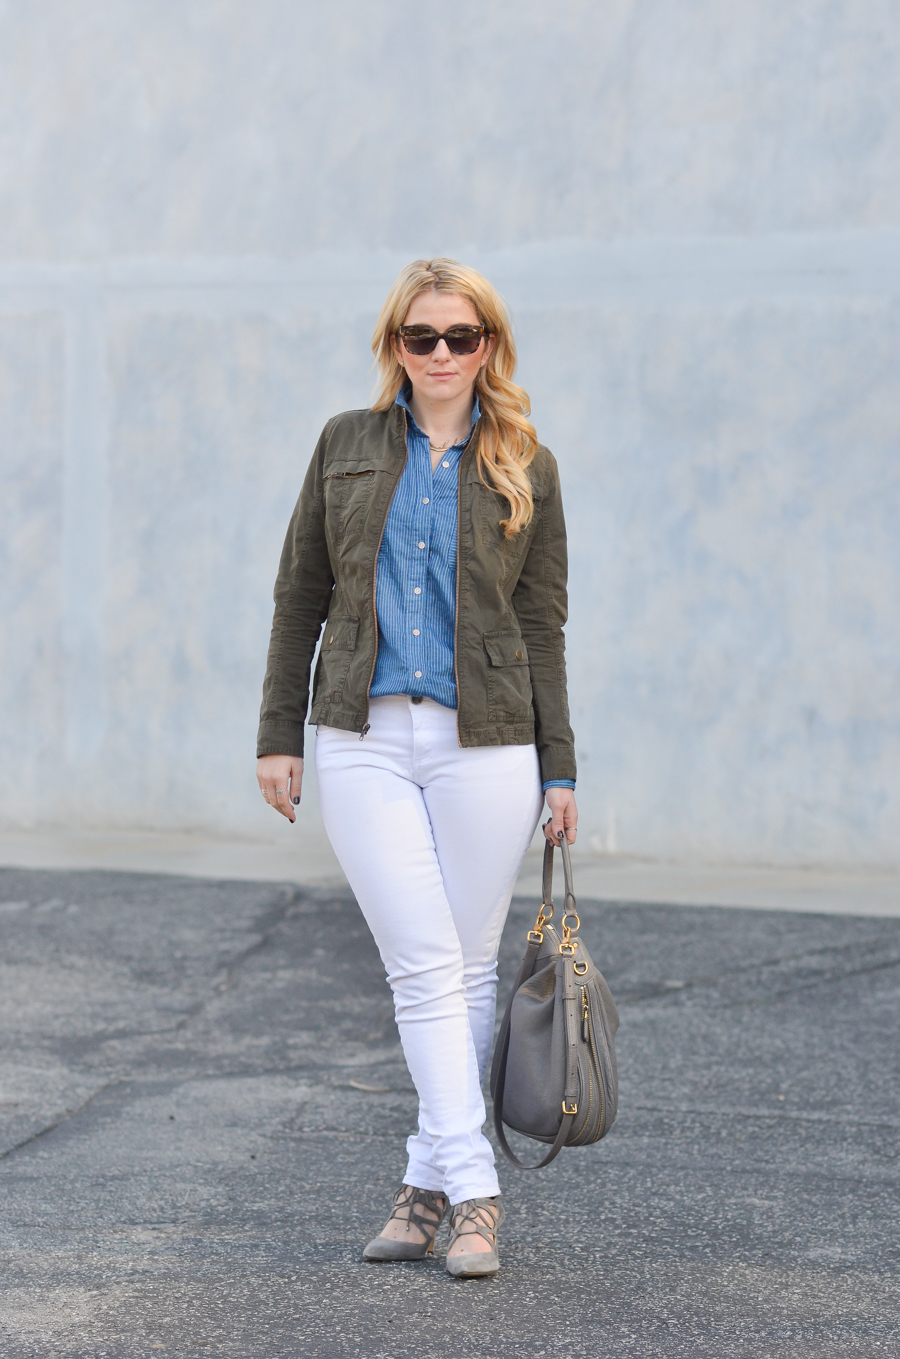 California Tailored Blue Shirt   White Jeans Outfit in Winter